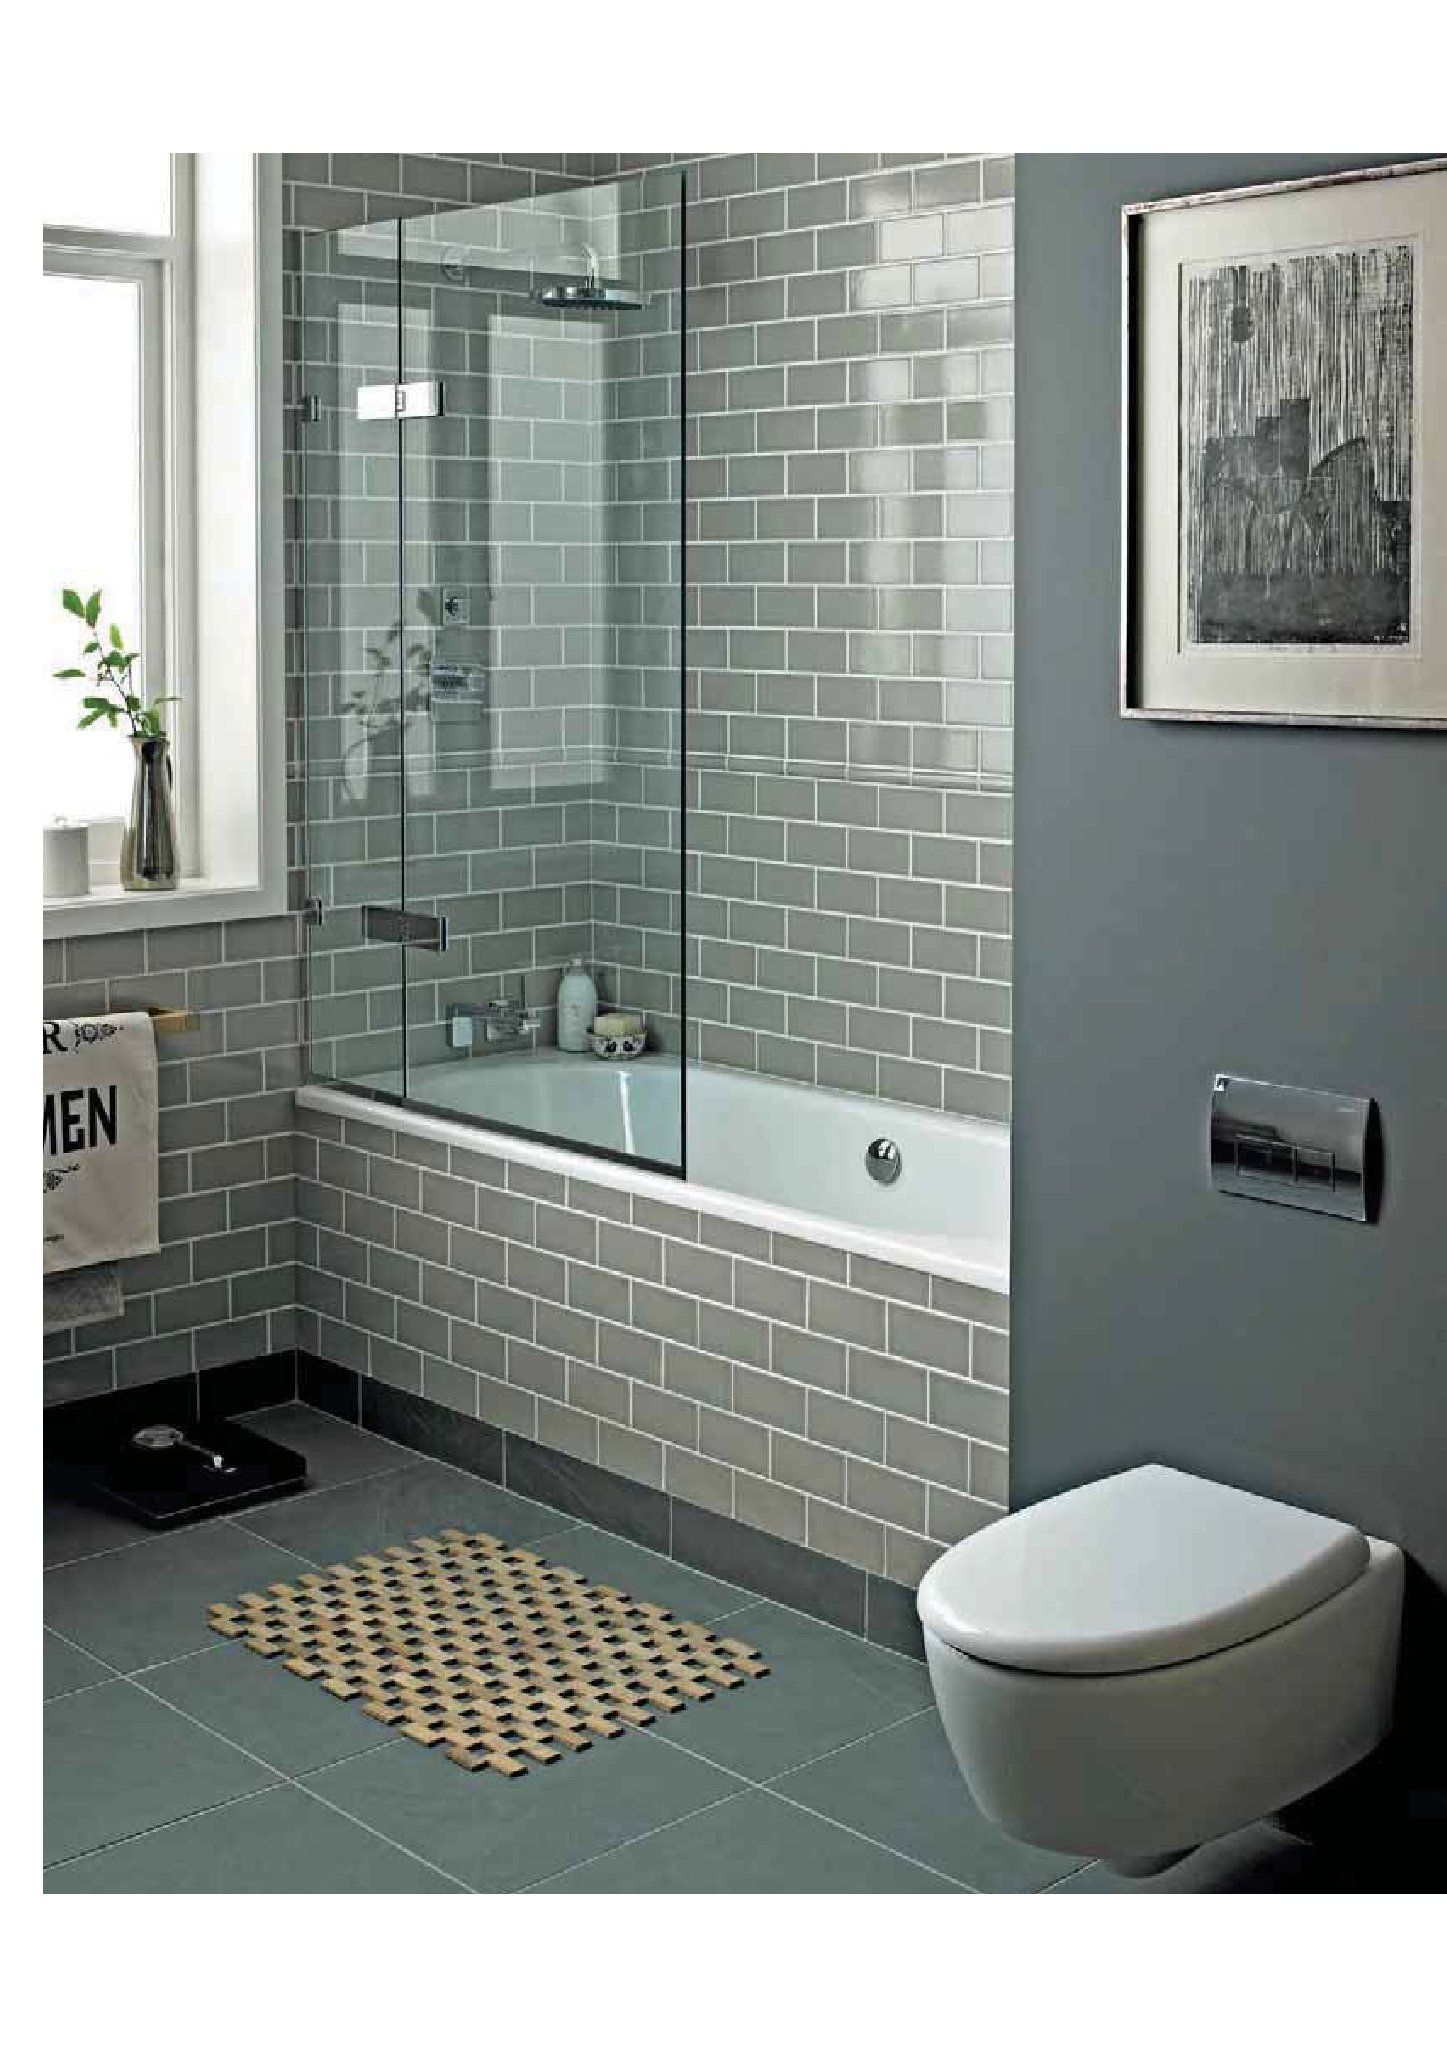 Smoke Grey Glass Subway Tiles Add A Spa Like Feel To This Tub Shower Combo Bath Bathrooms Remodel Bathroom Makeover Small Bathroom